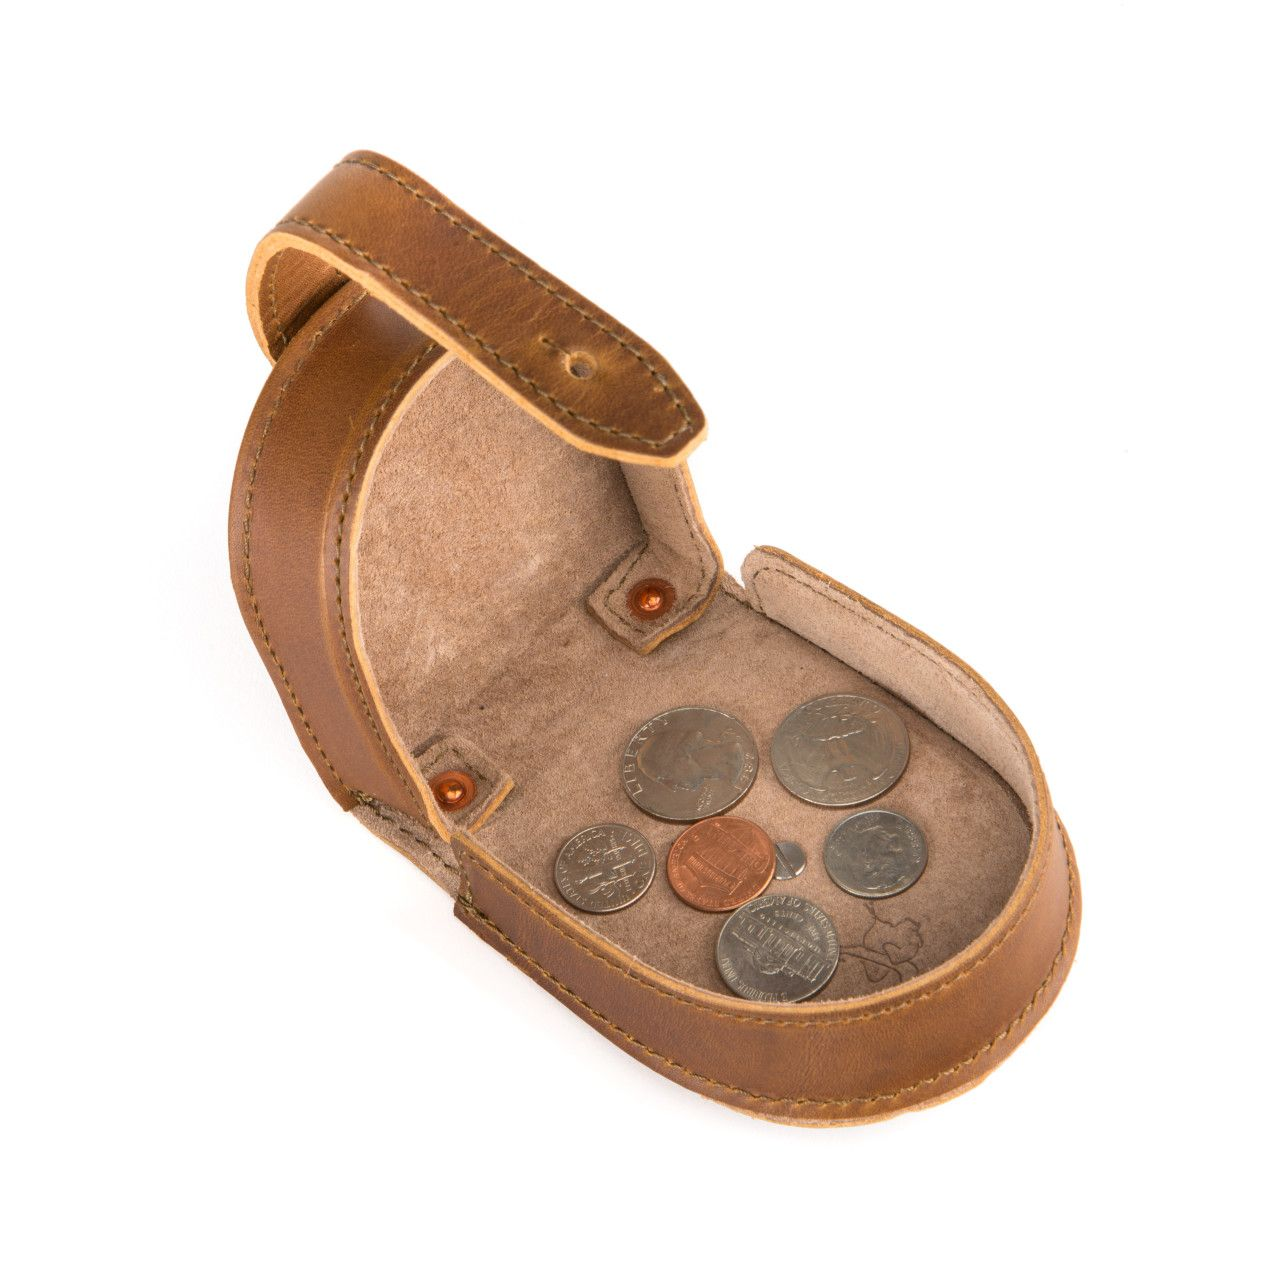 leather coin purse in tobacco leather with fine coins